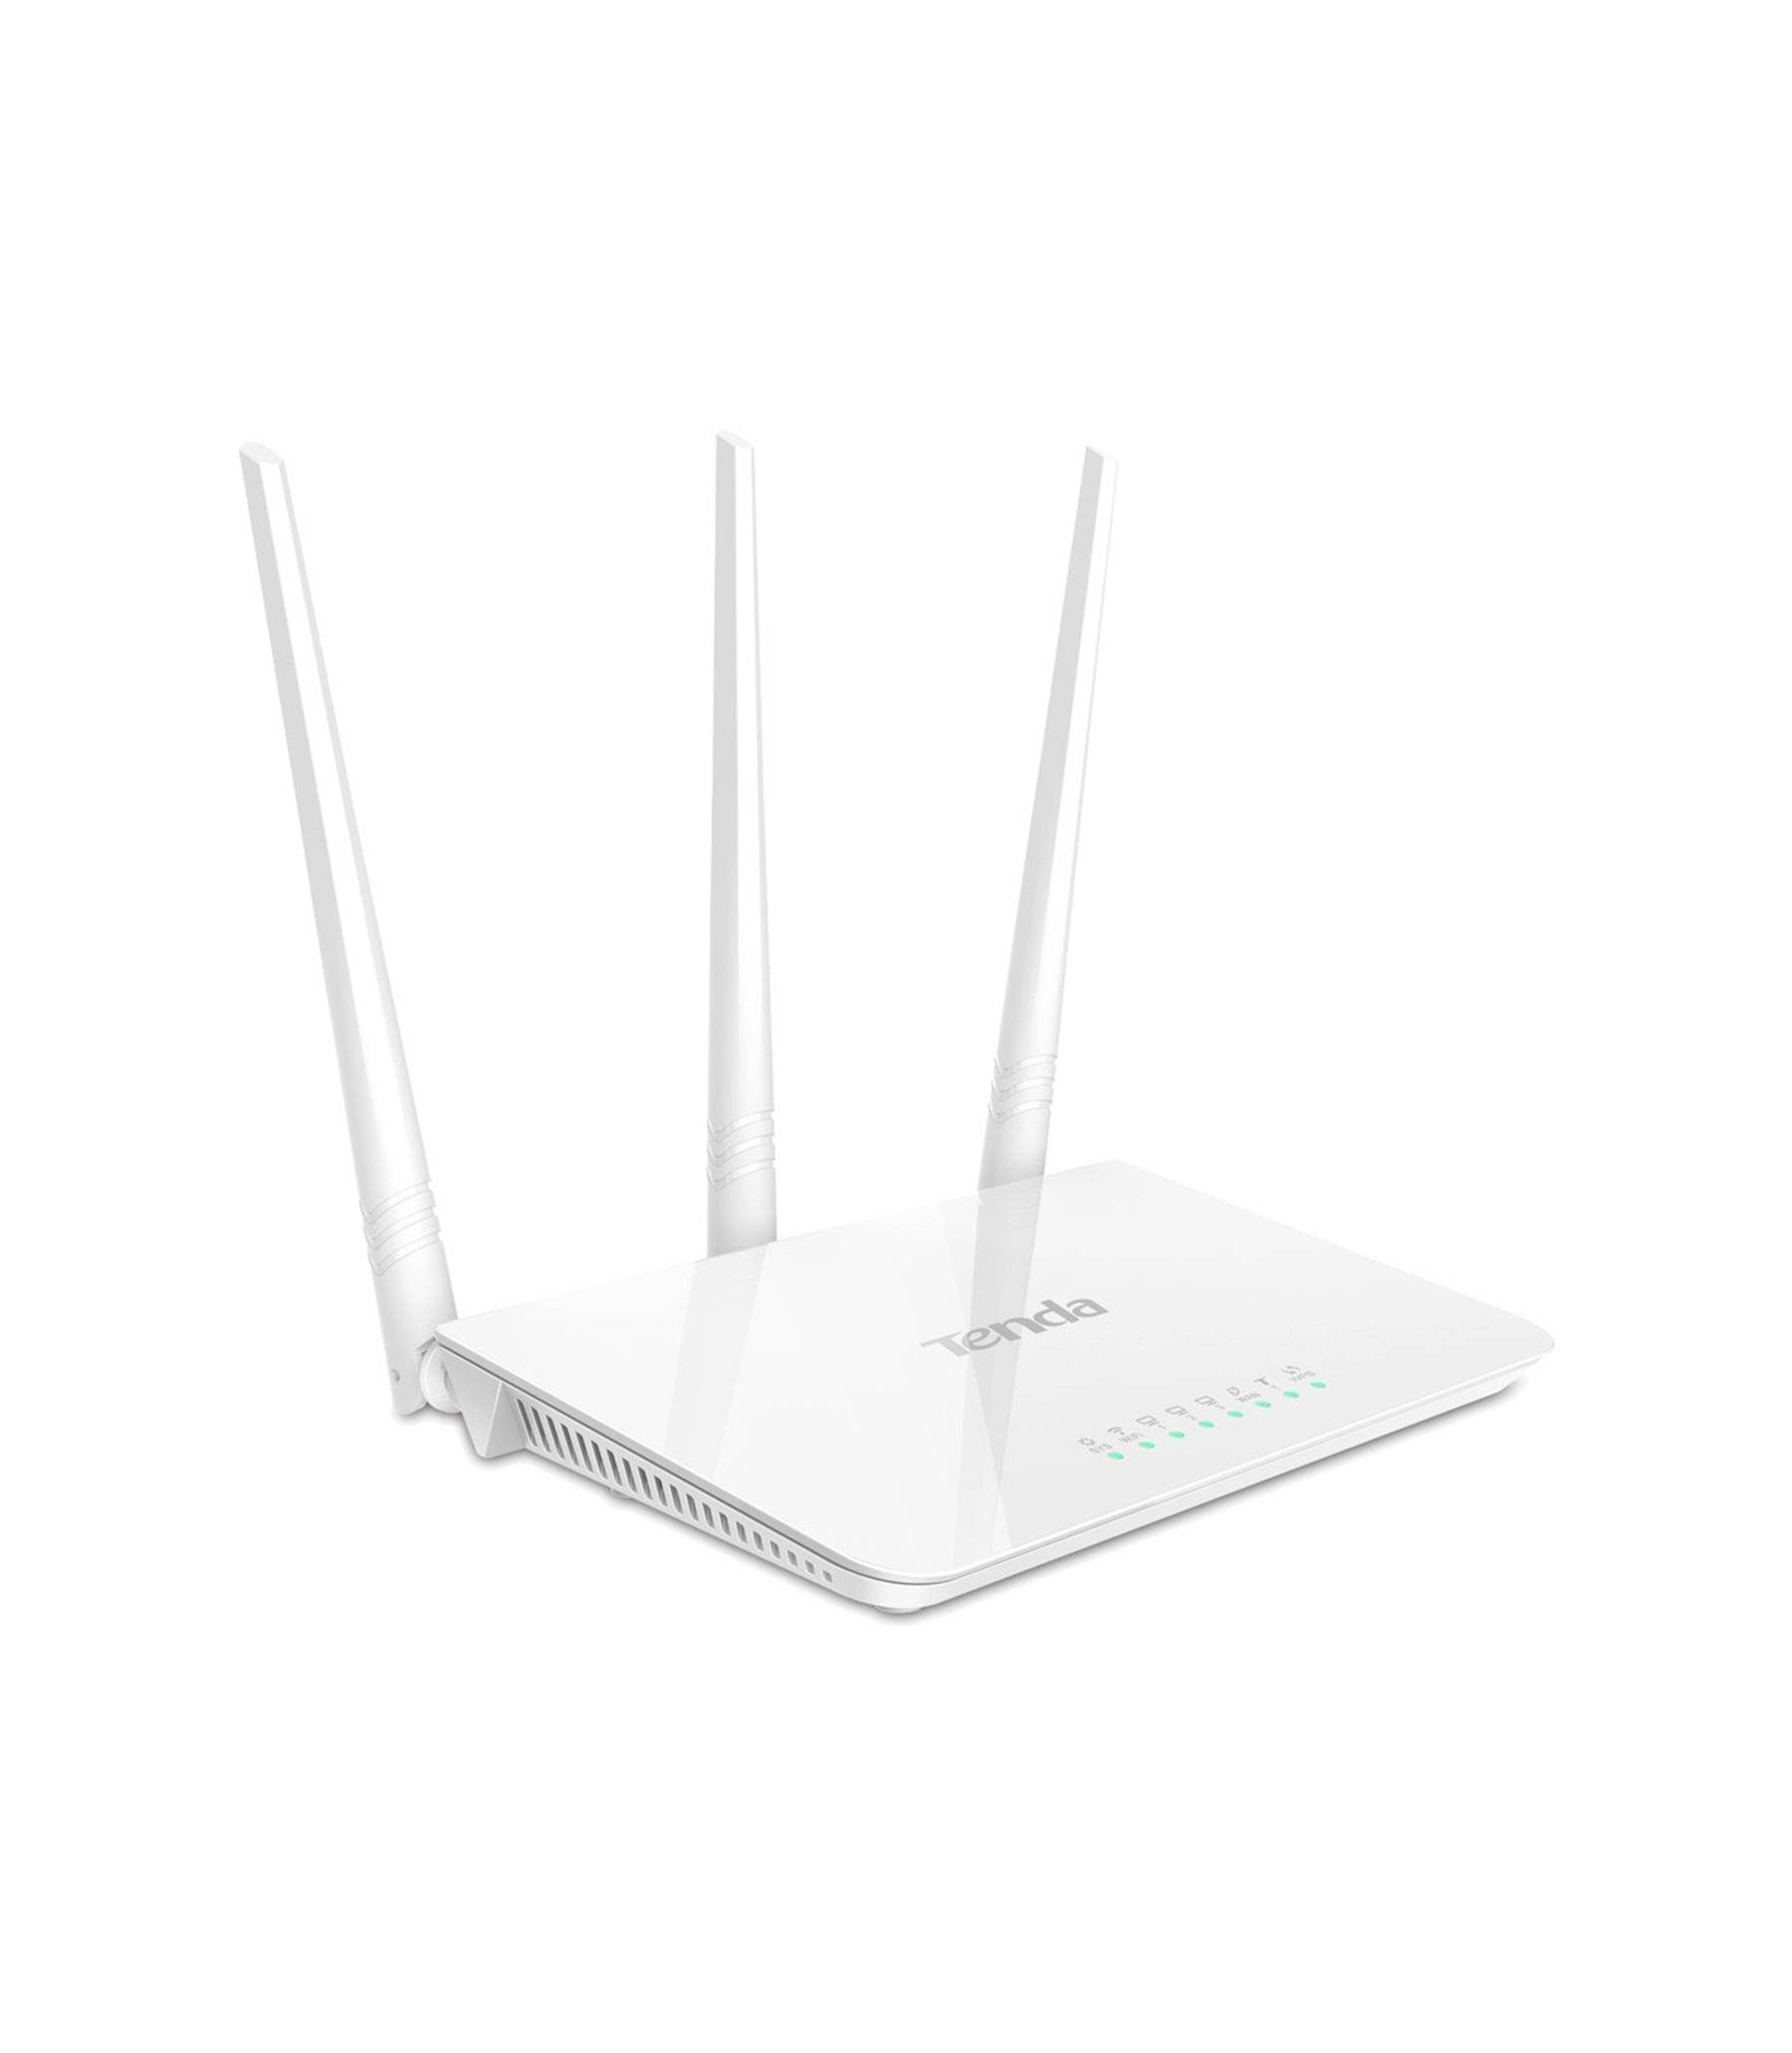 Buy Tenda F3 3 Antenna Router In Bangladesh Tp Link Tl Wr940n 300mbps Wireless N